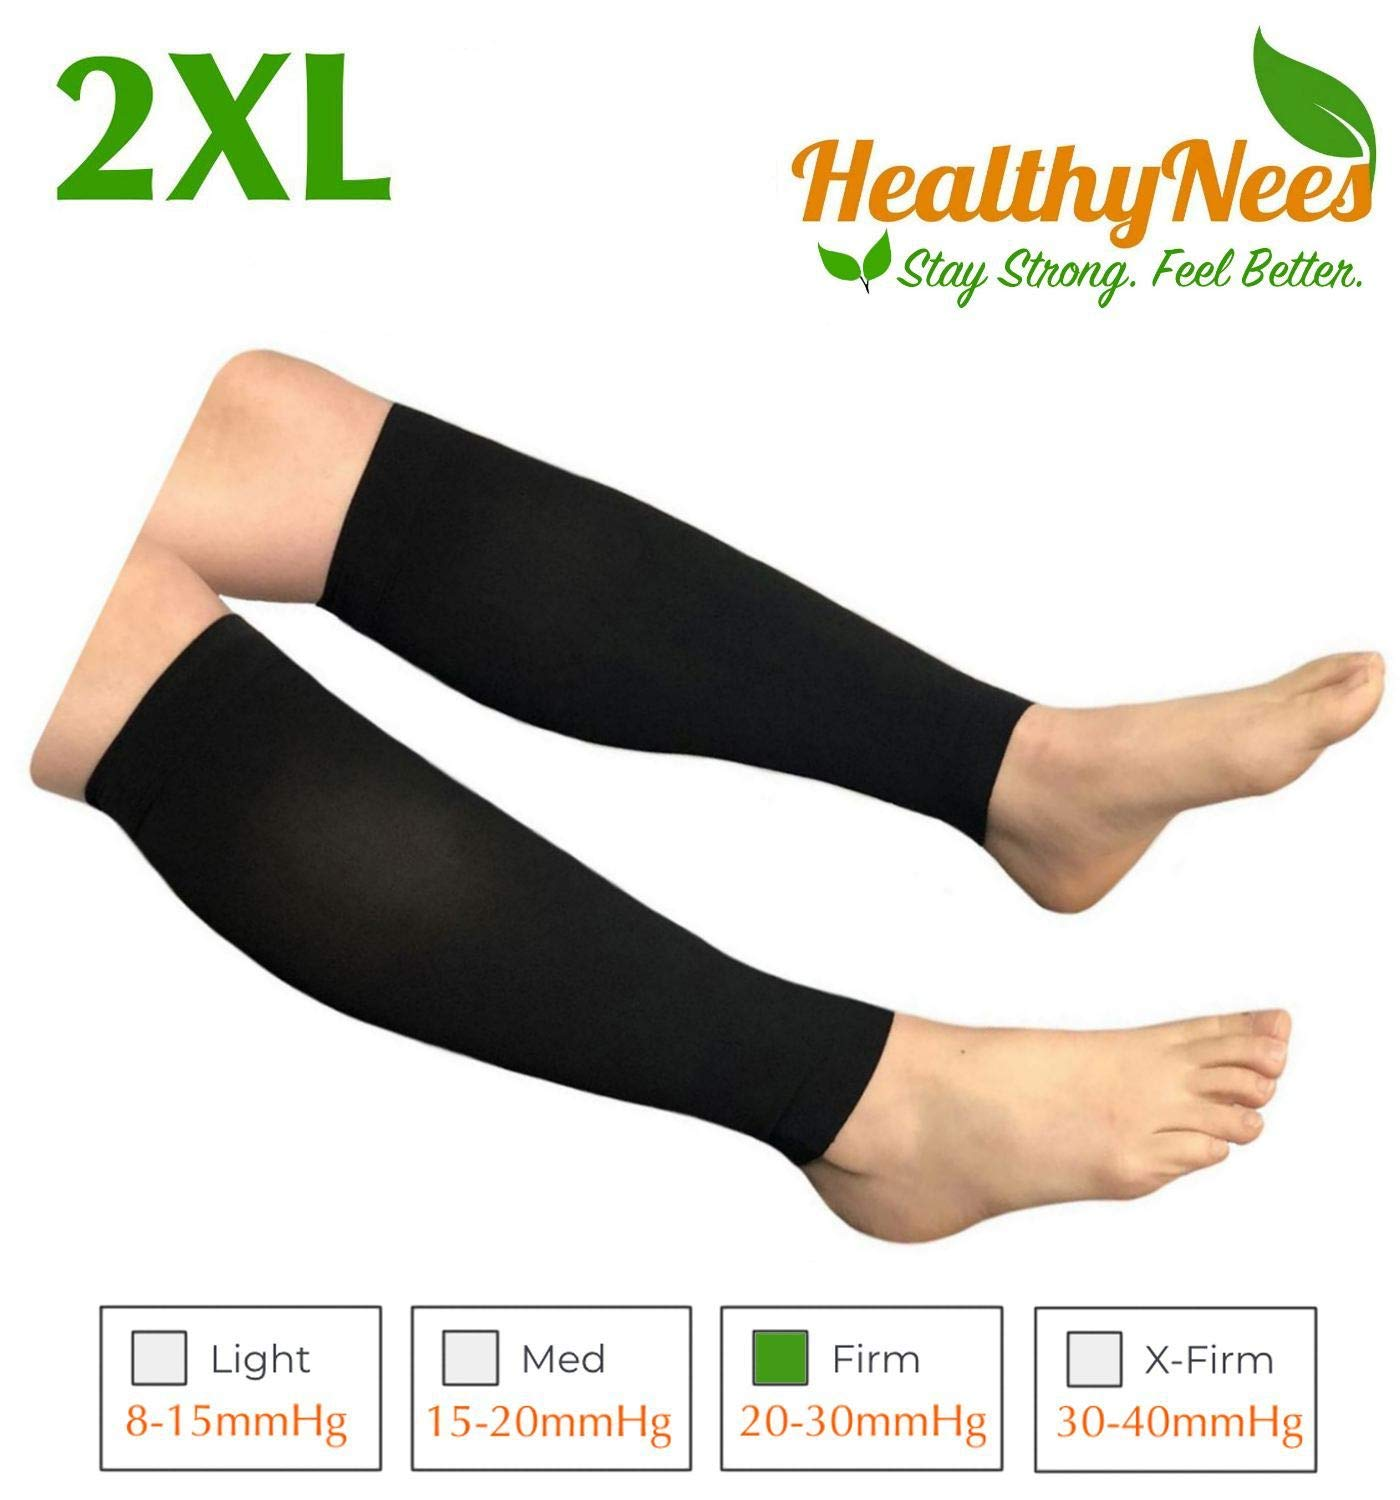 HealthyNees Shin Calf Sleeve 20-30 mmHg Medical Compression Circulation Extra Wide Plus Size Big Tall Leg Thick Calves Firm Support (Black, Mid Calf 2XL) by HealthyNees